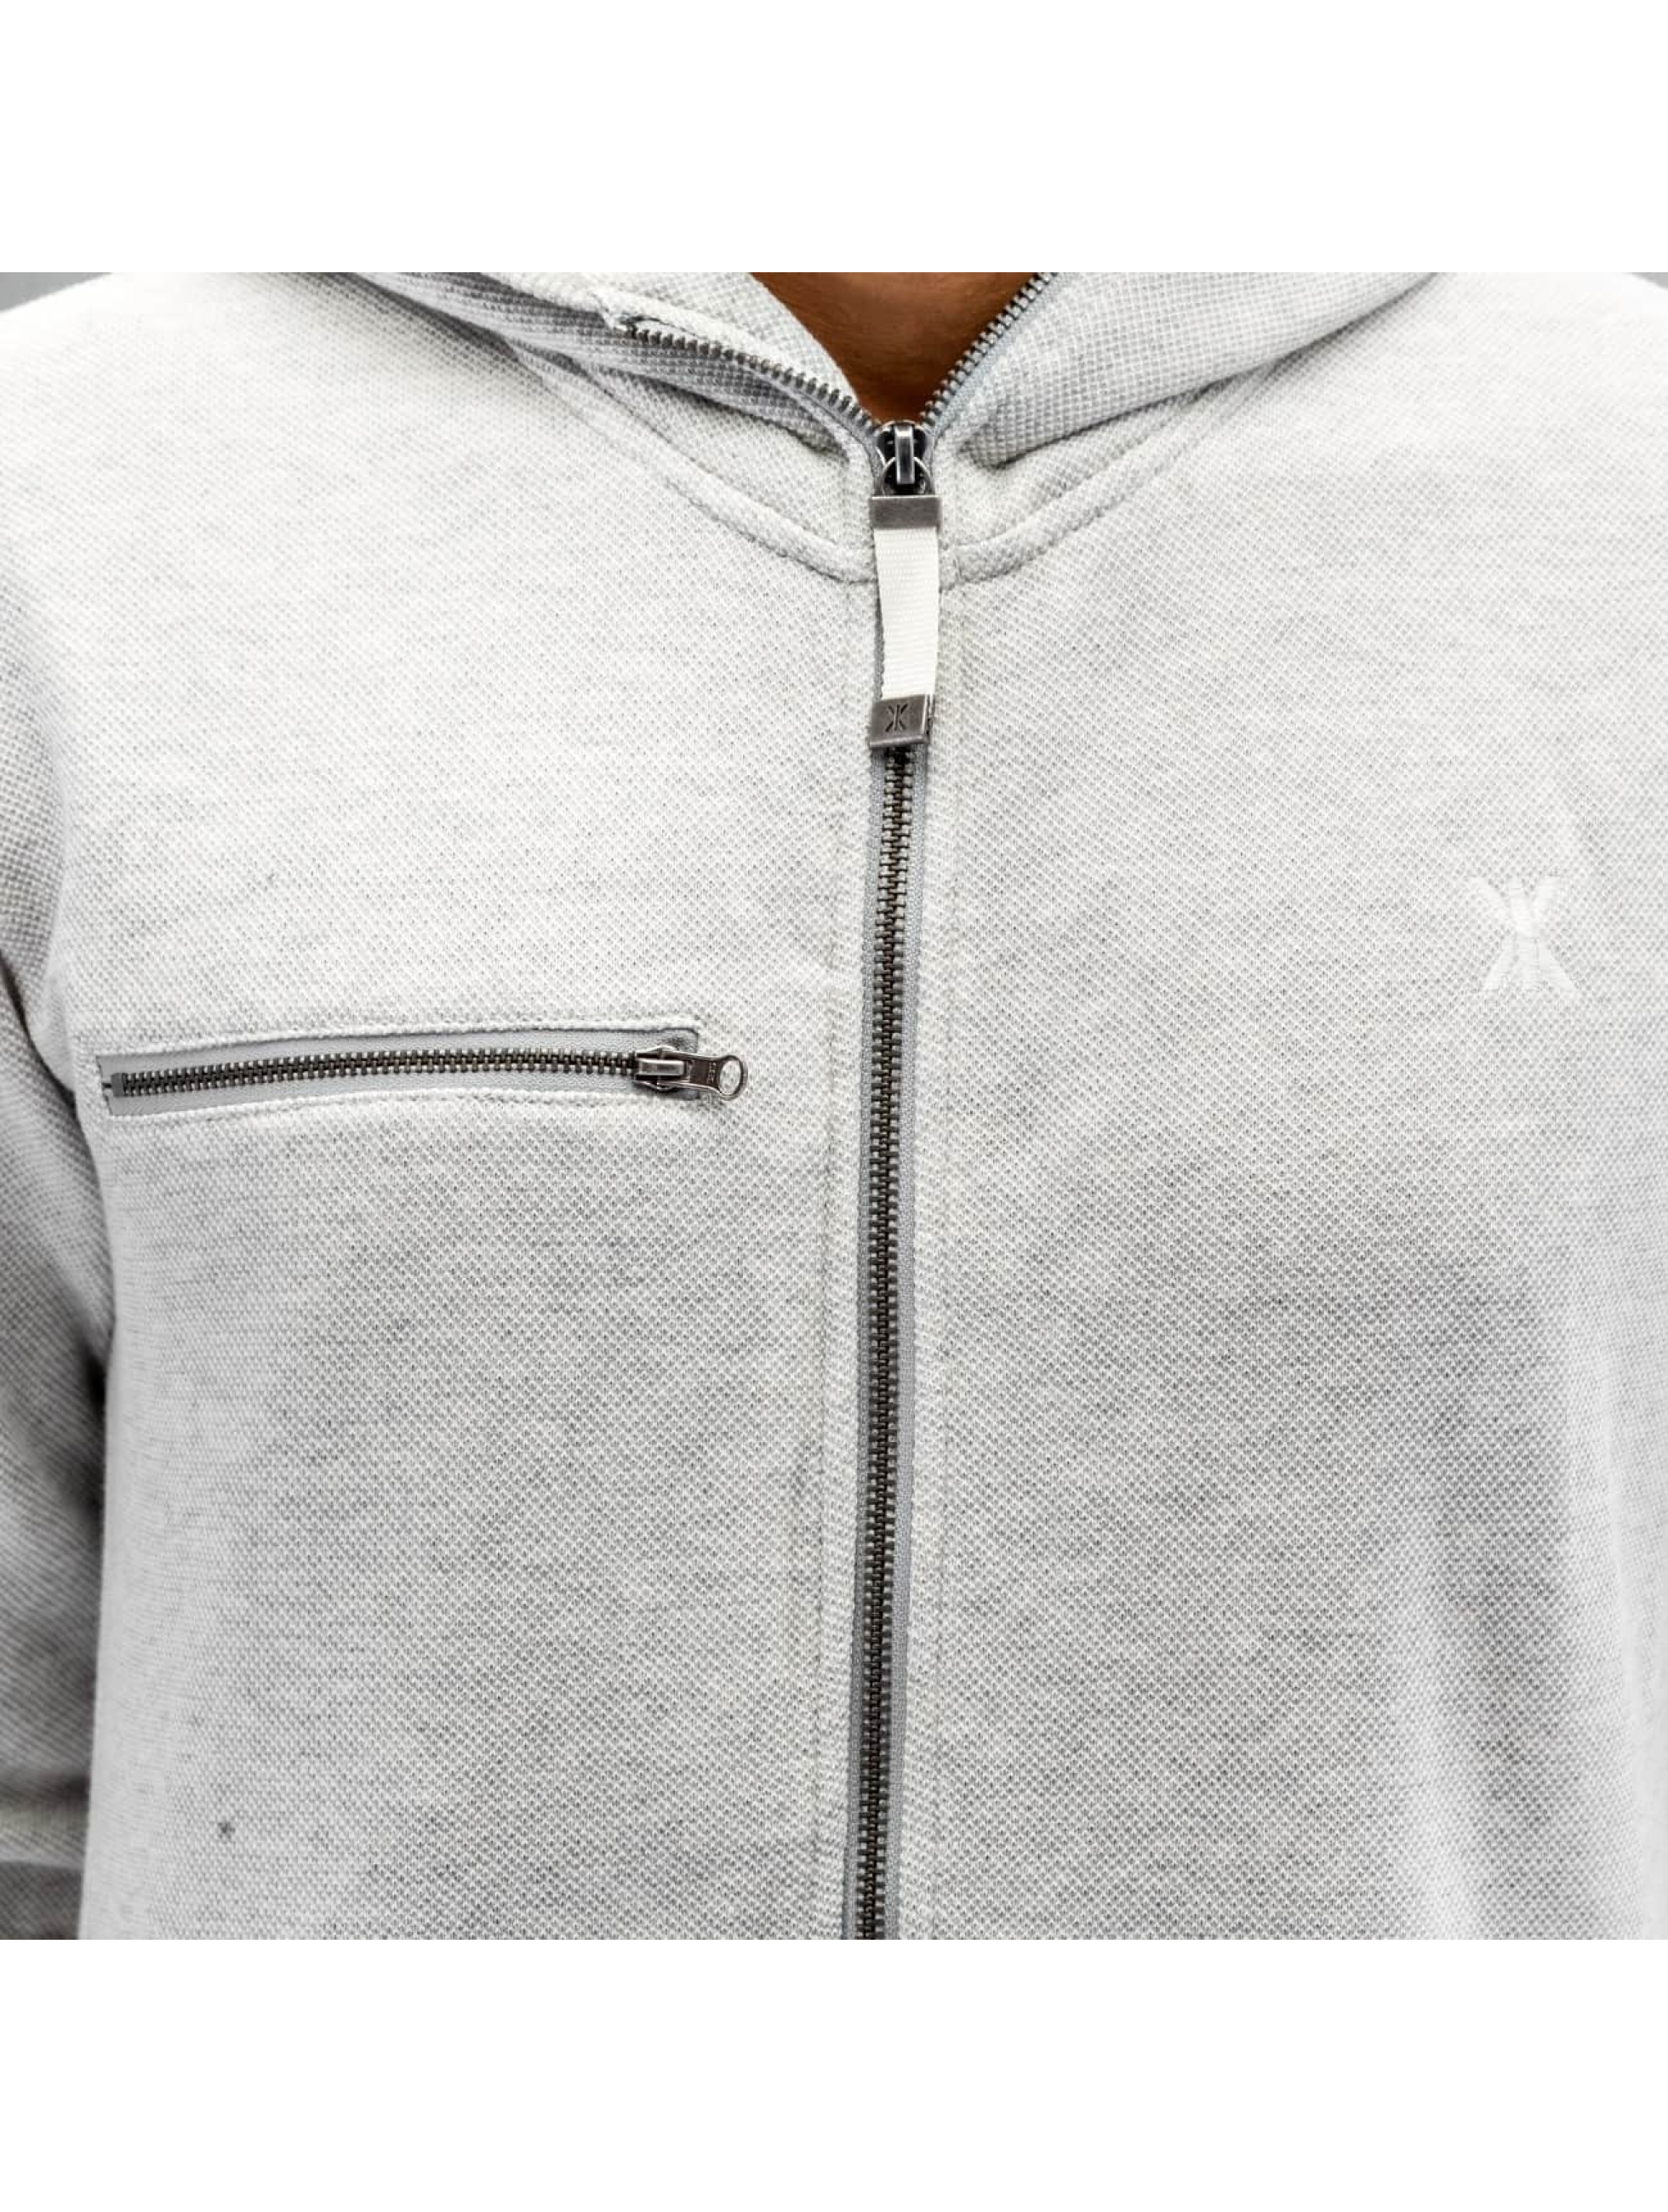 OnePiece Jumpsuits Slow grey